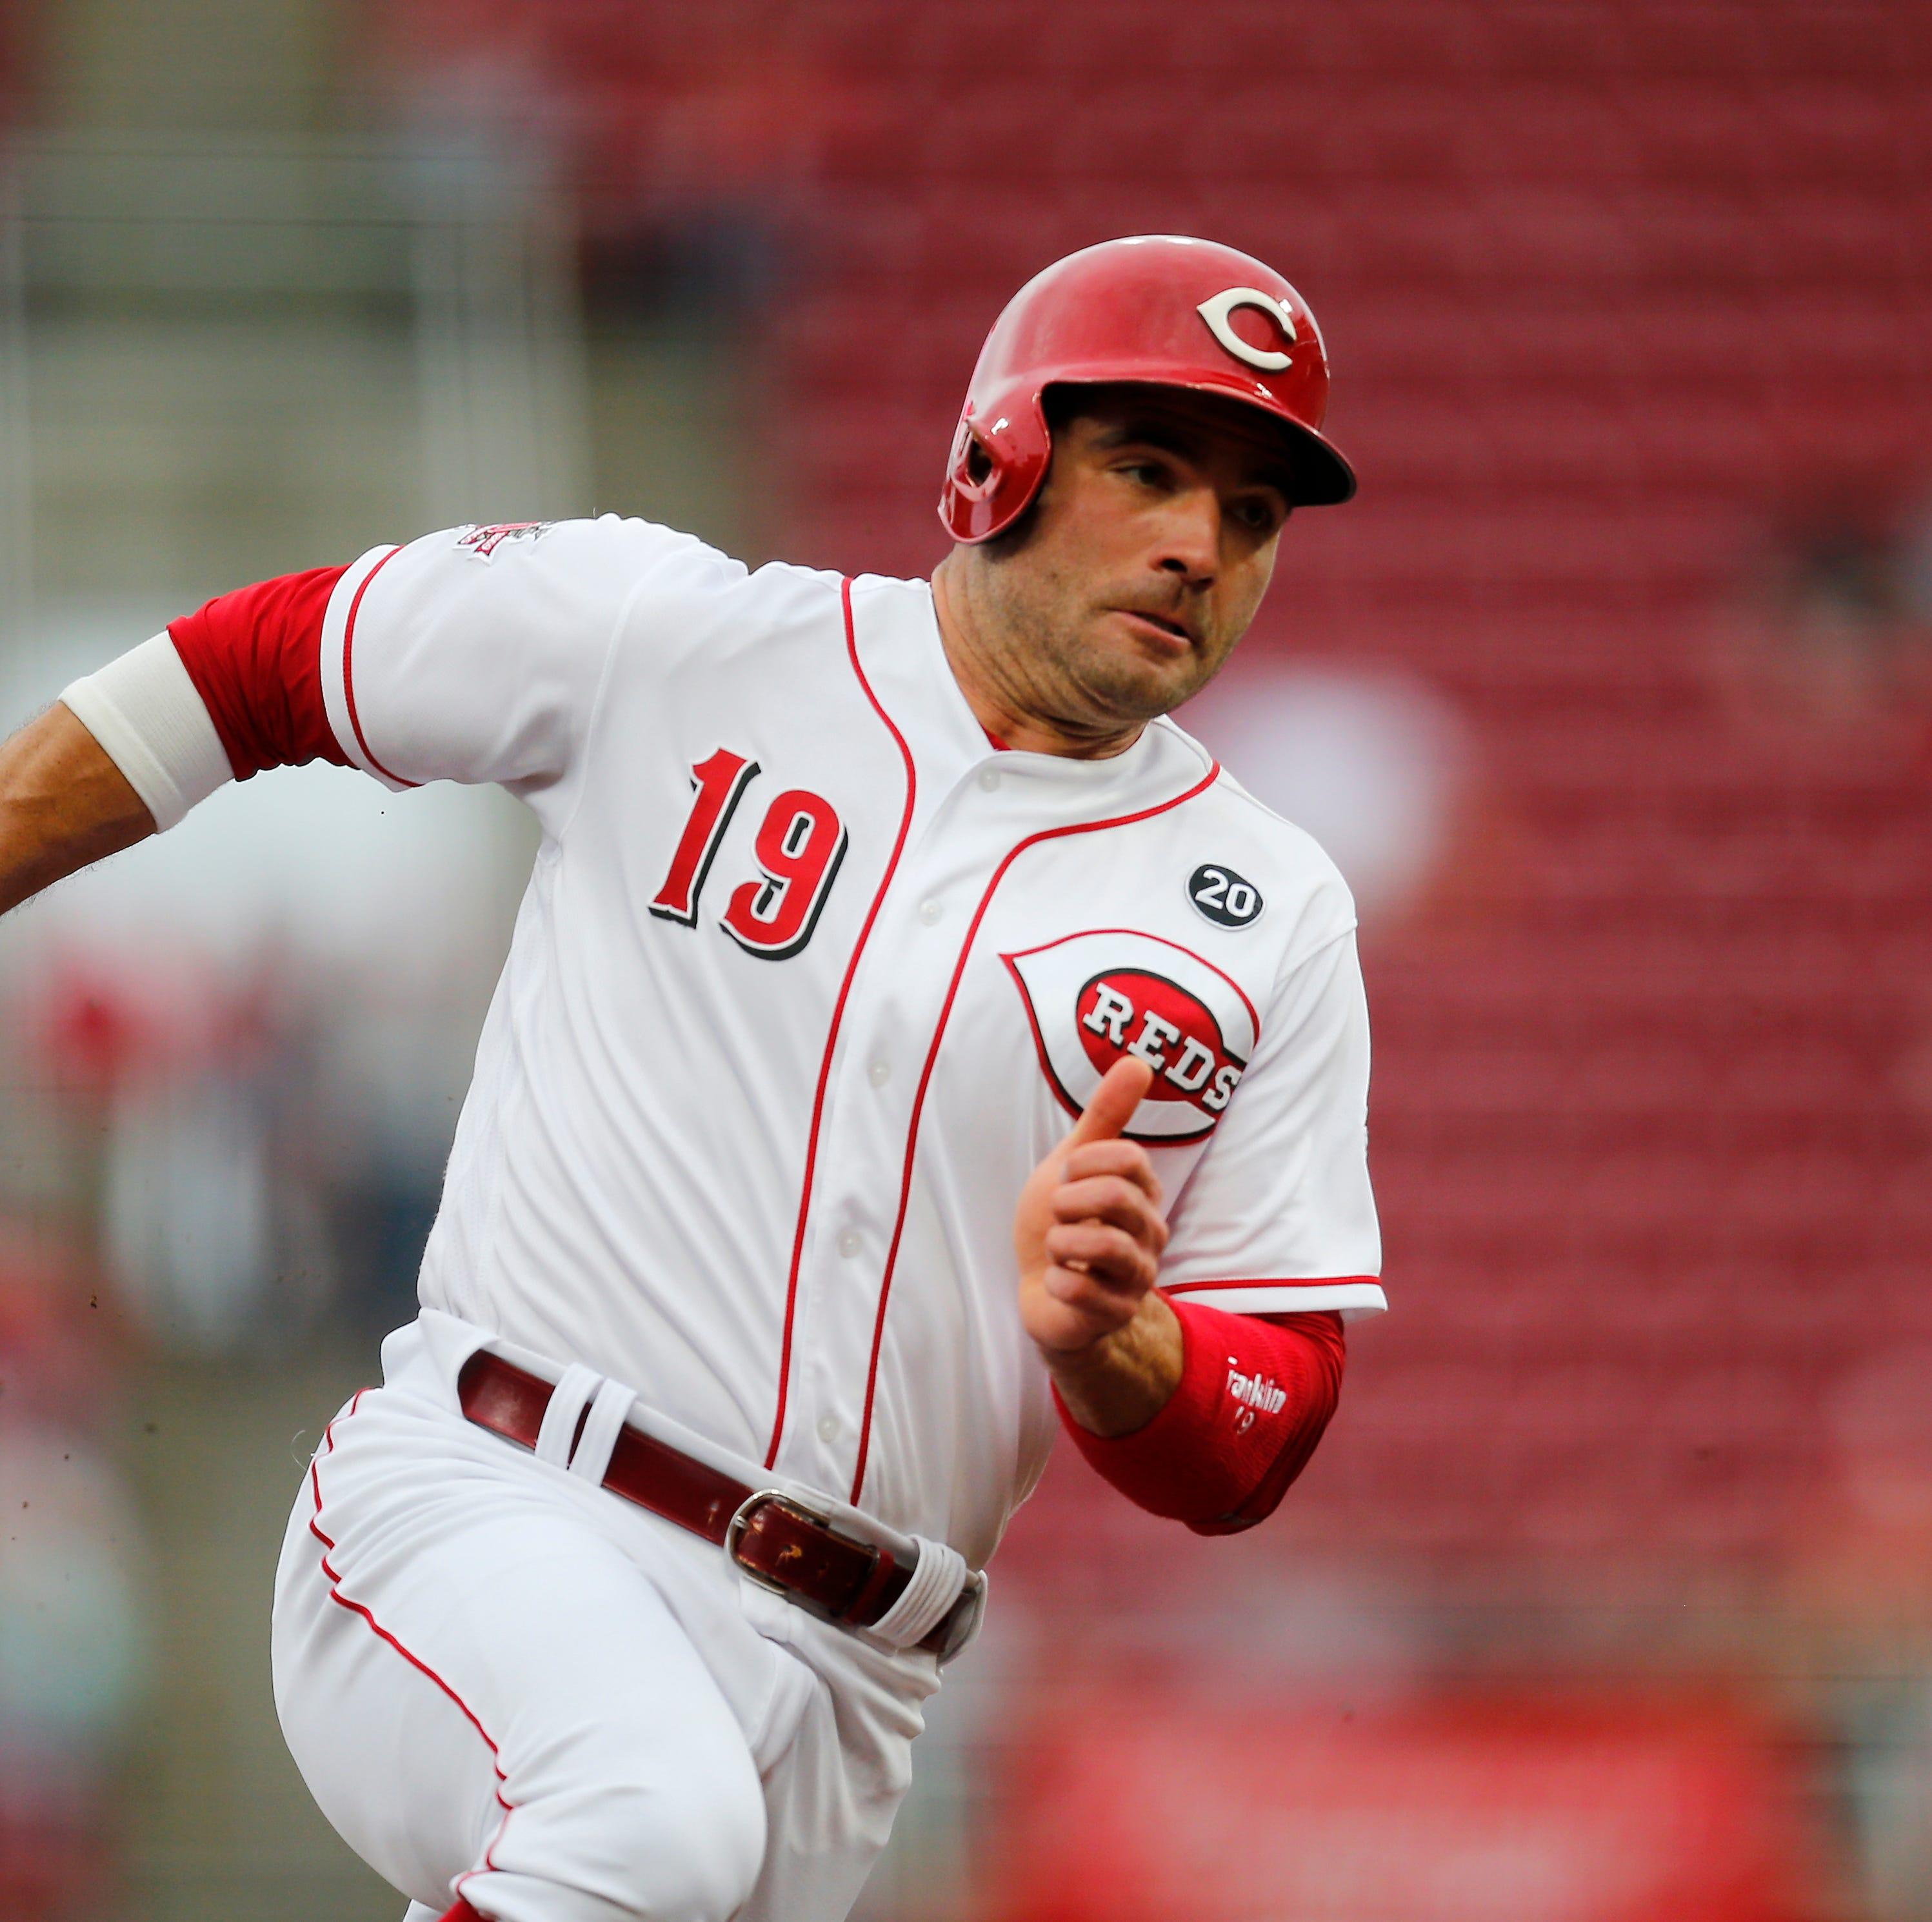 Doc's Morning Line: What hitting leadoff for Reds says about Joey Votto's current game